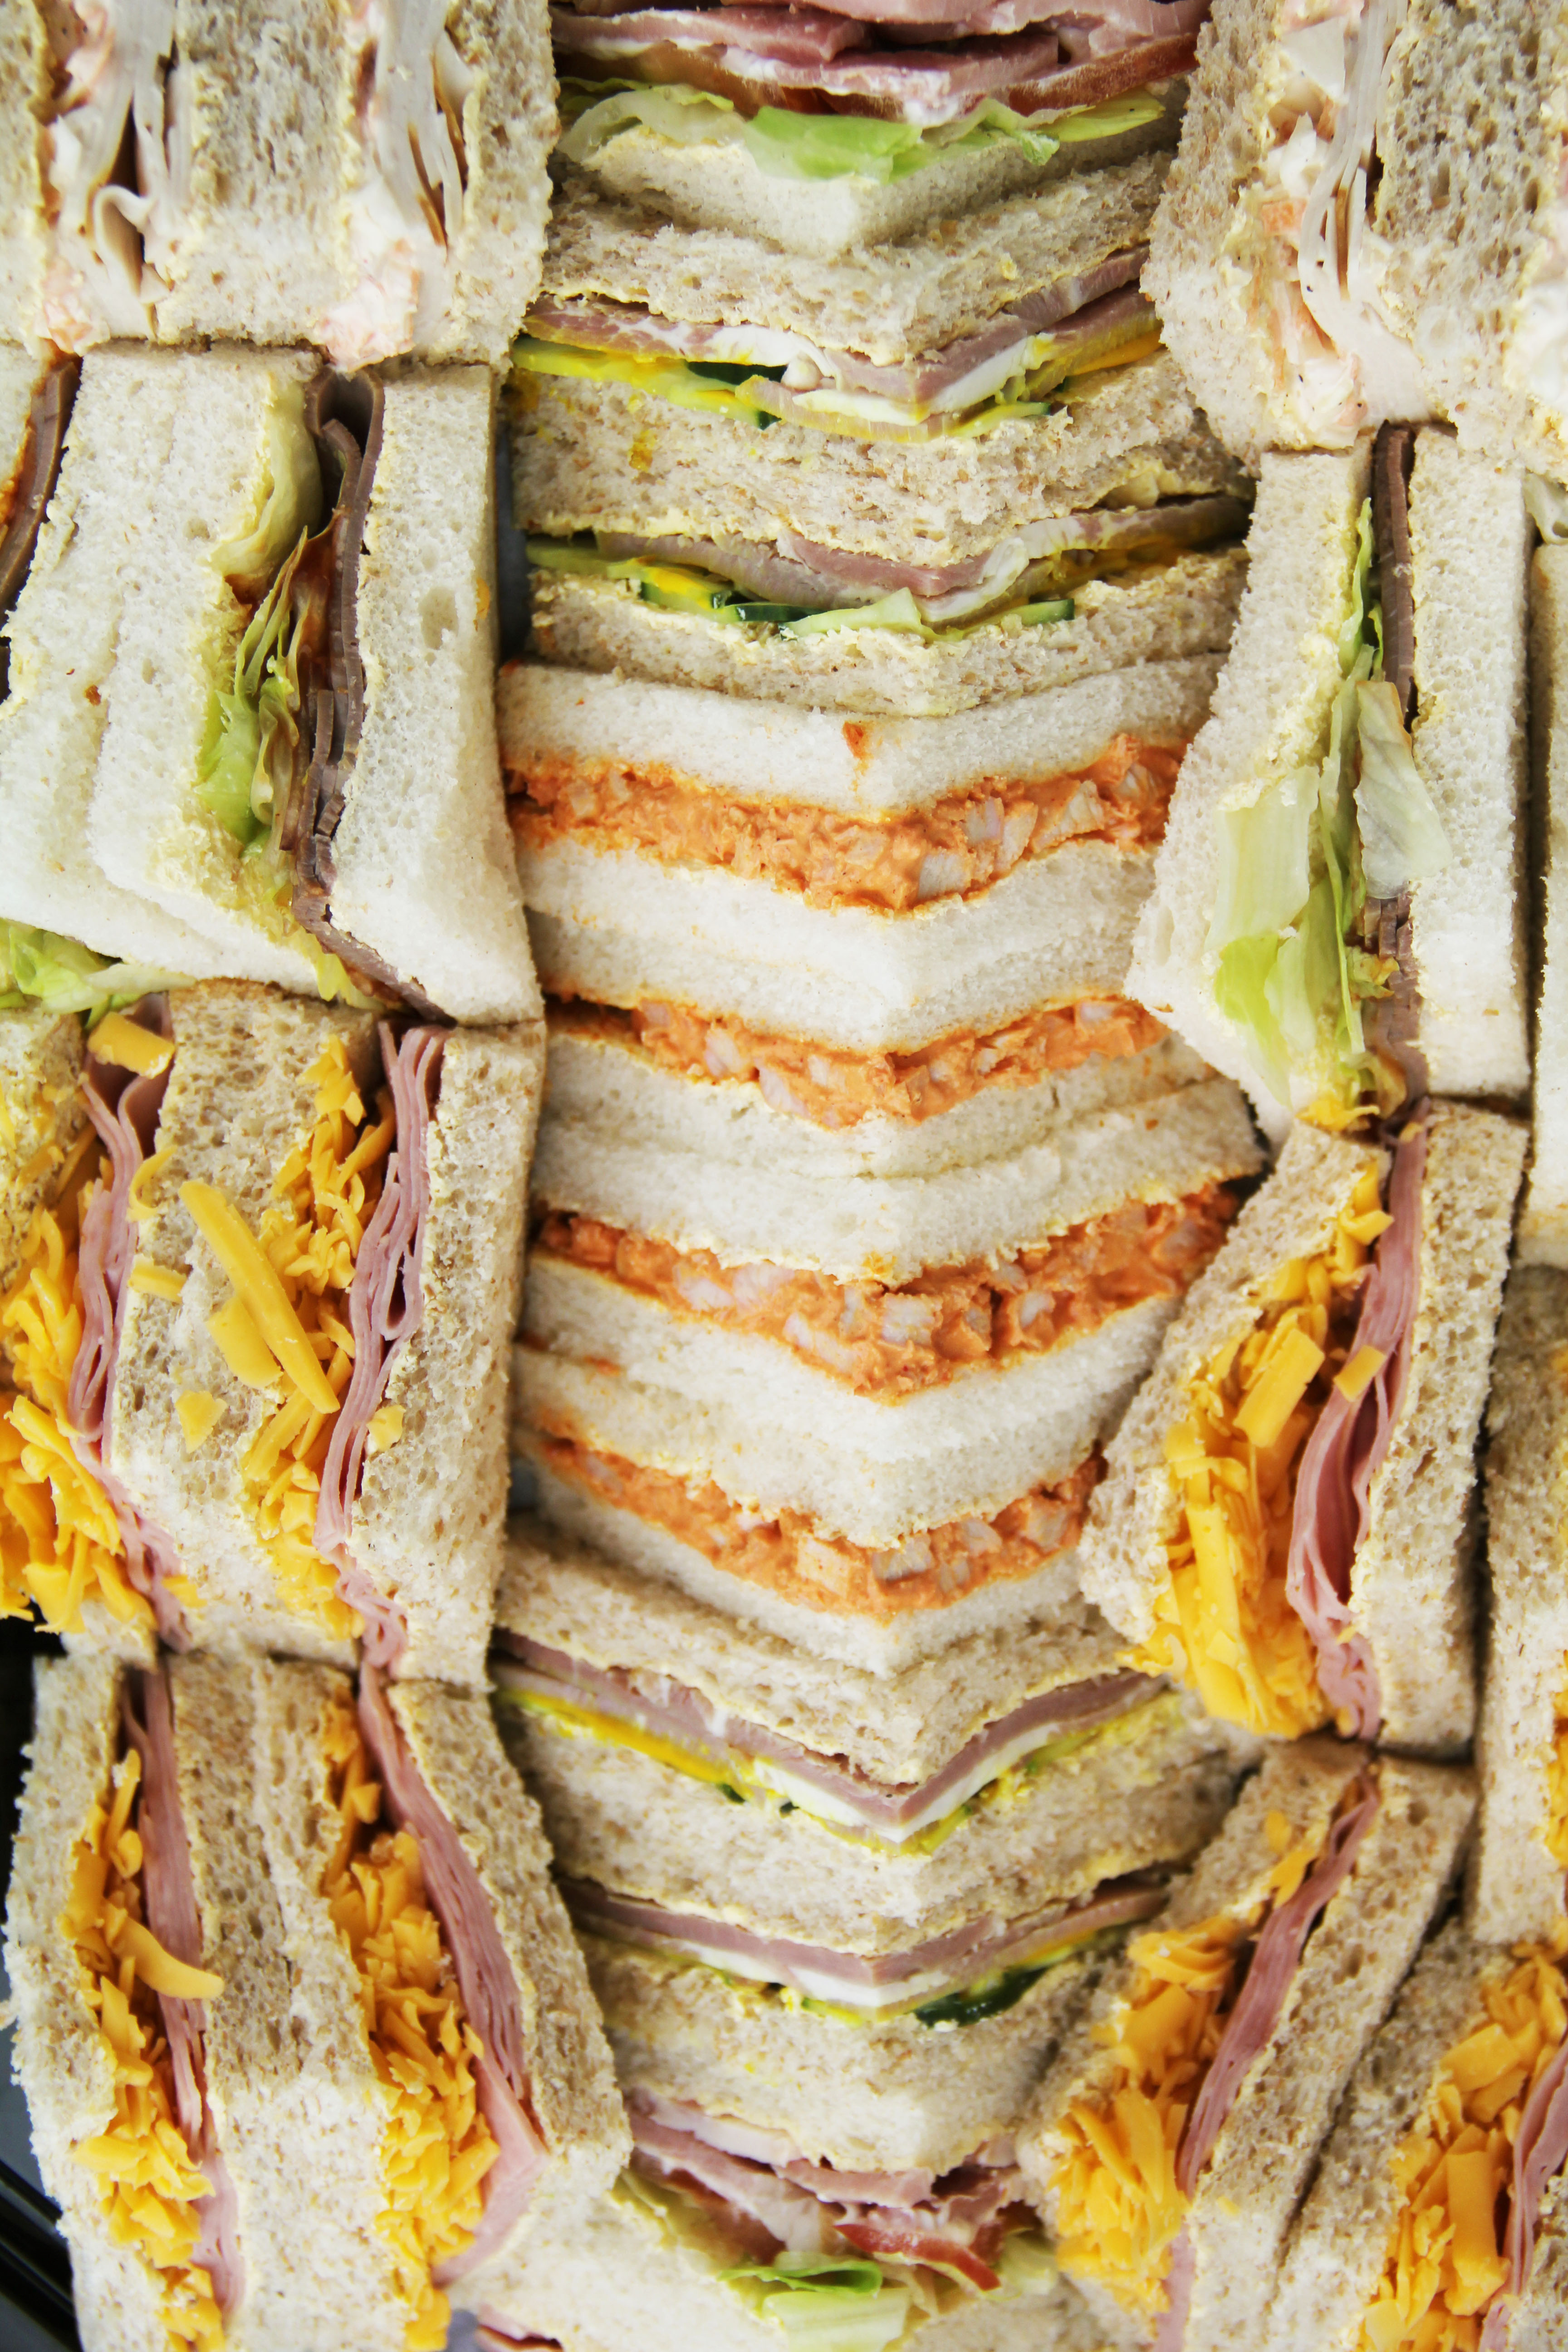 Sandwich platter from Catering Twist